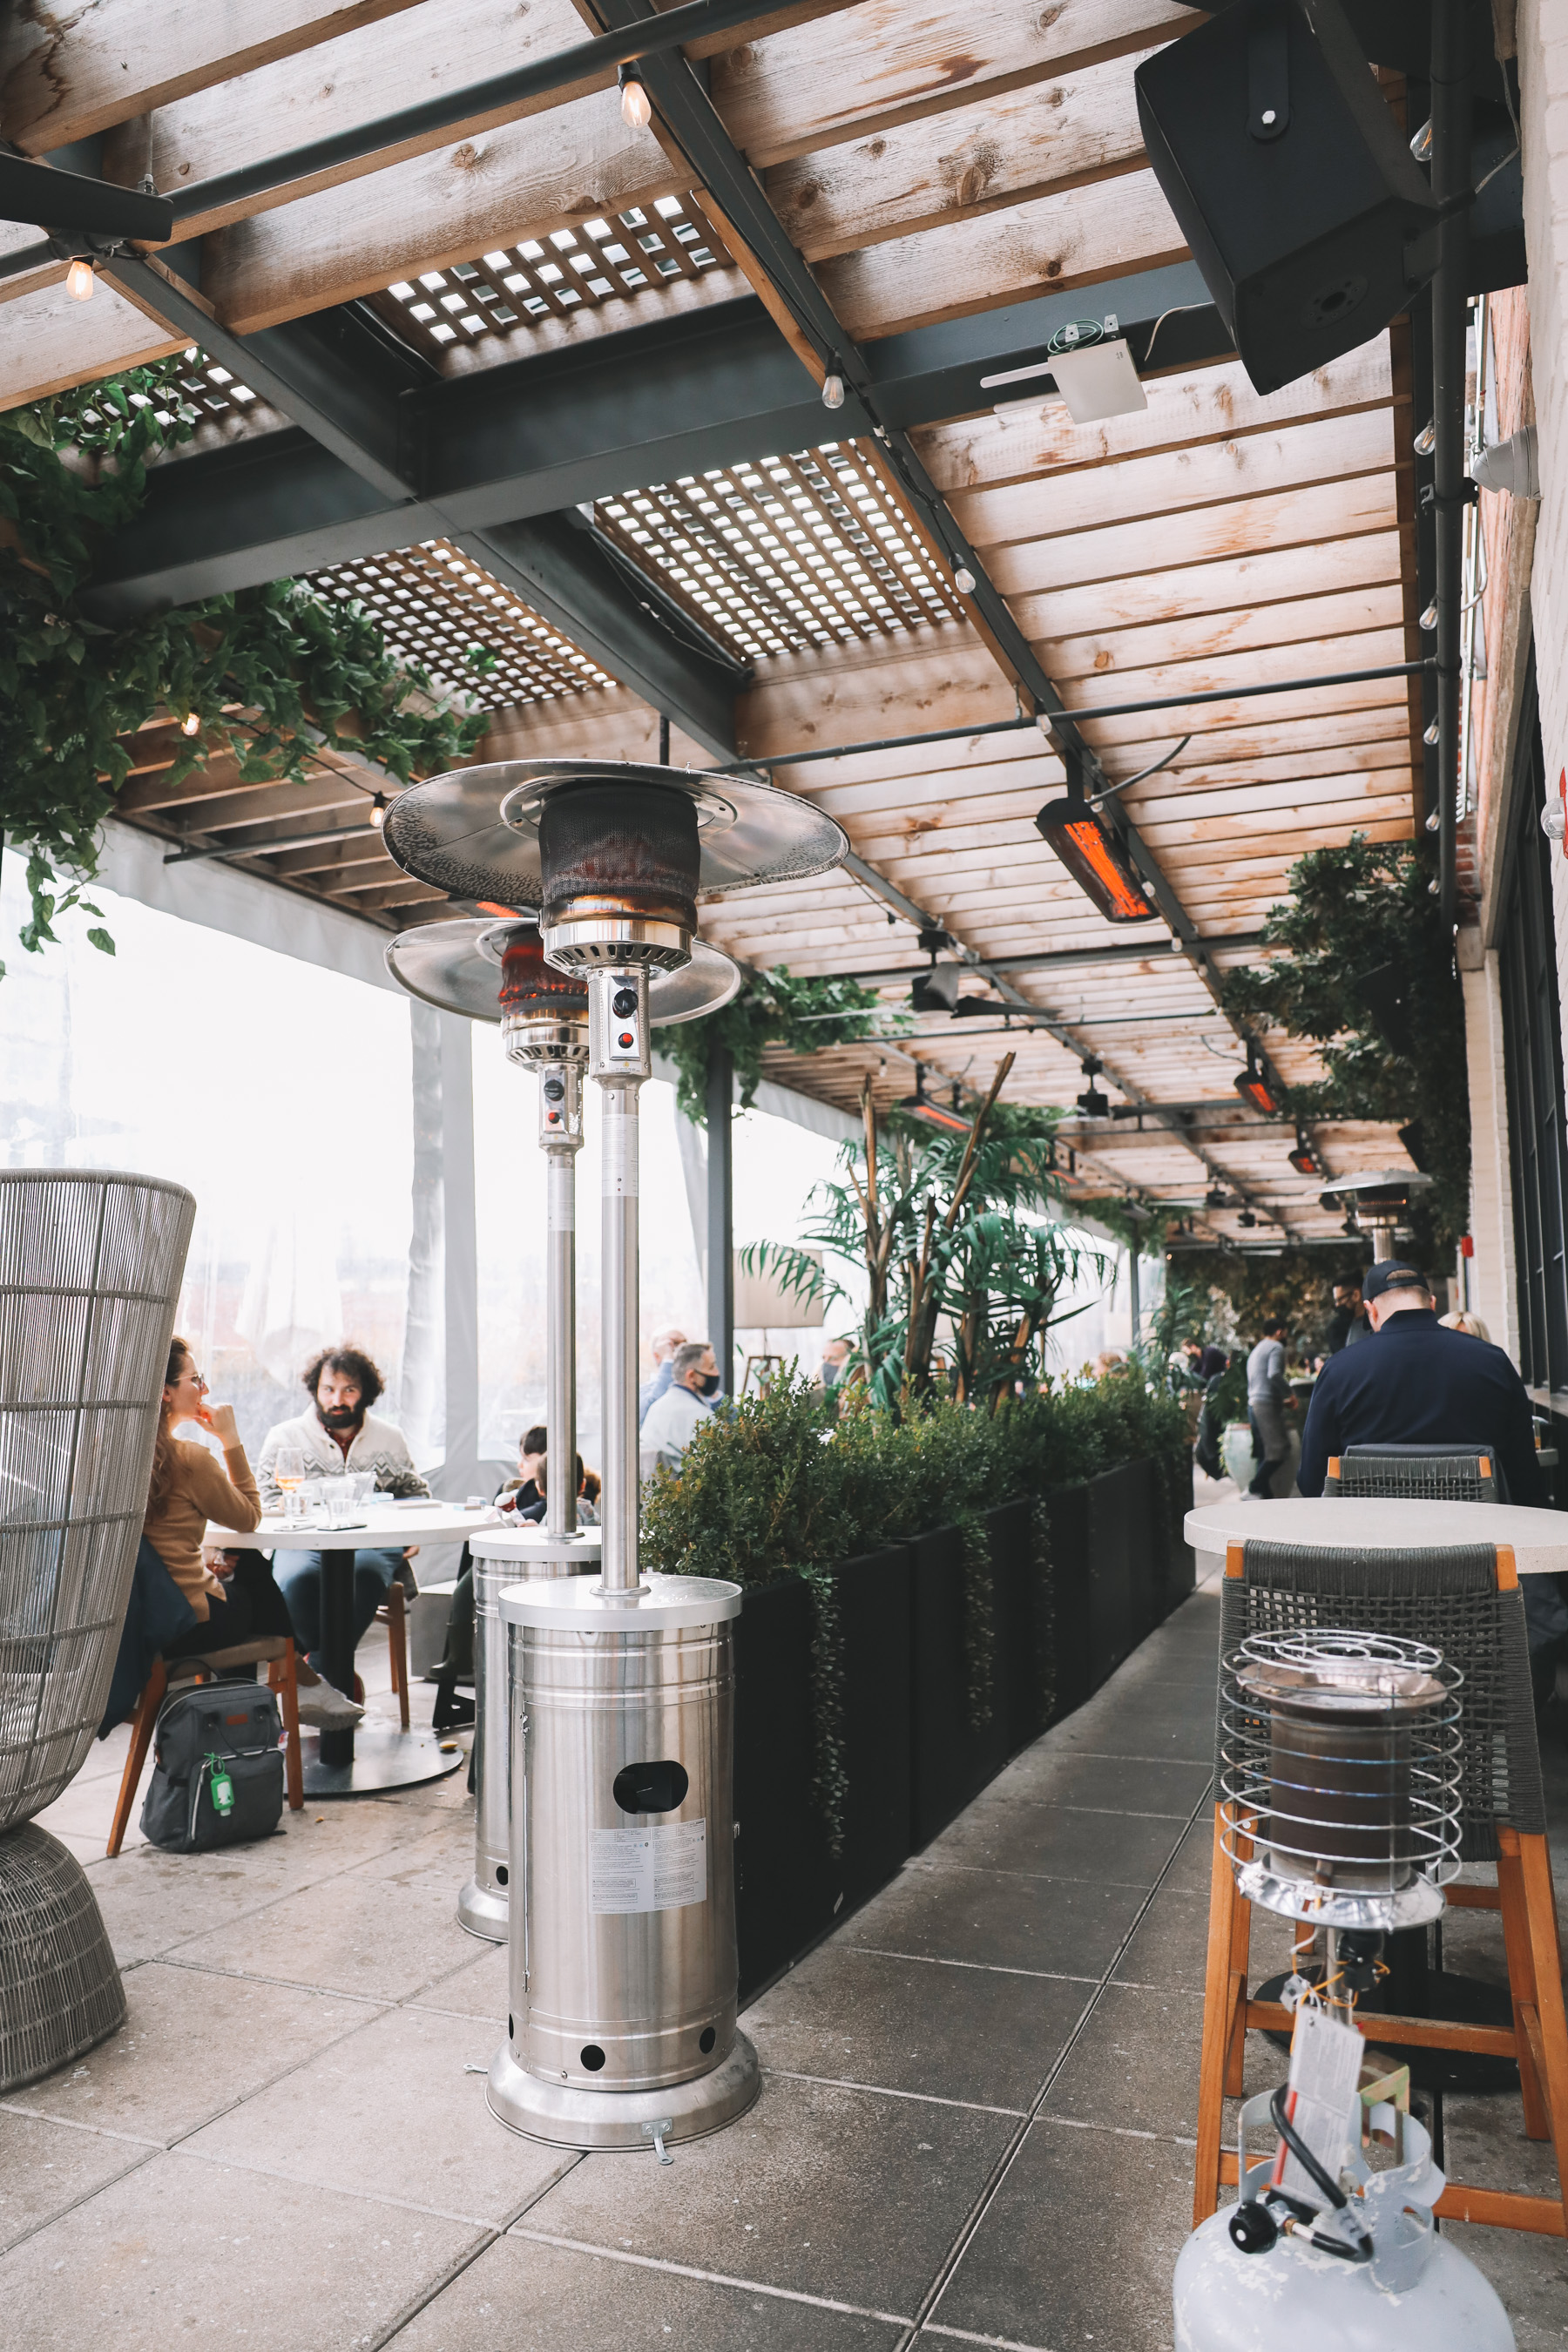 Aba Greenhouse Rooftop Dinner experience